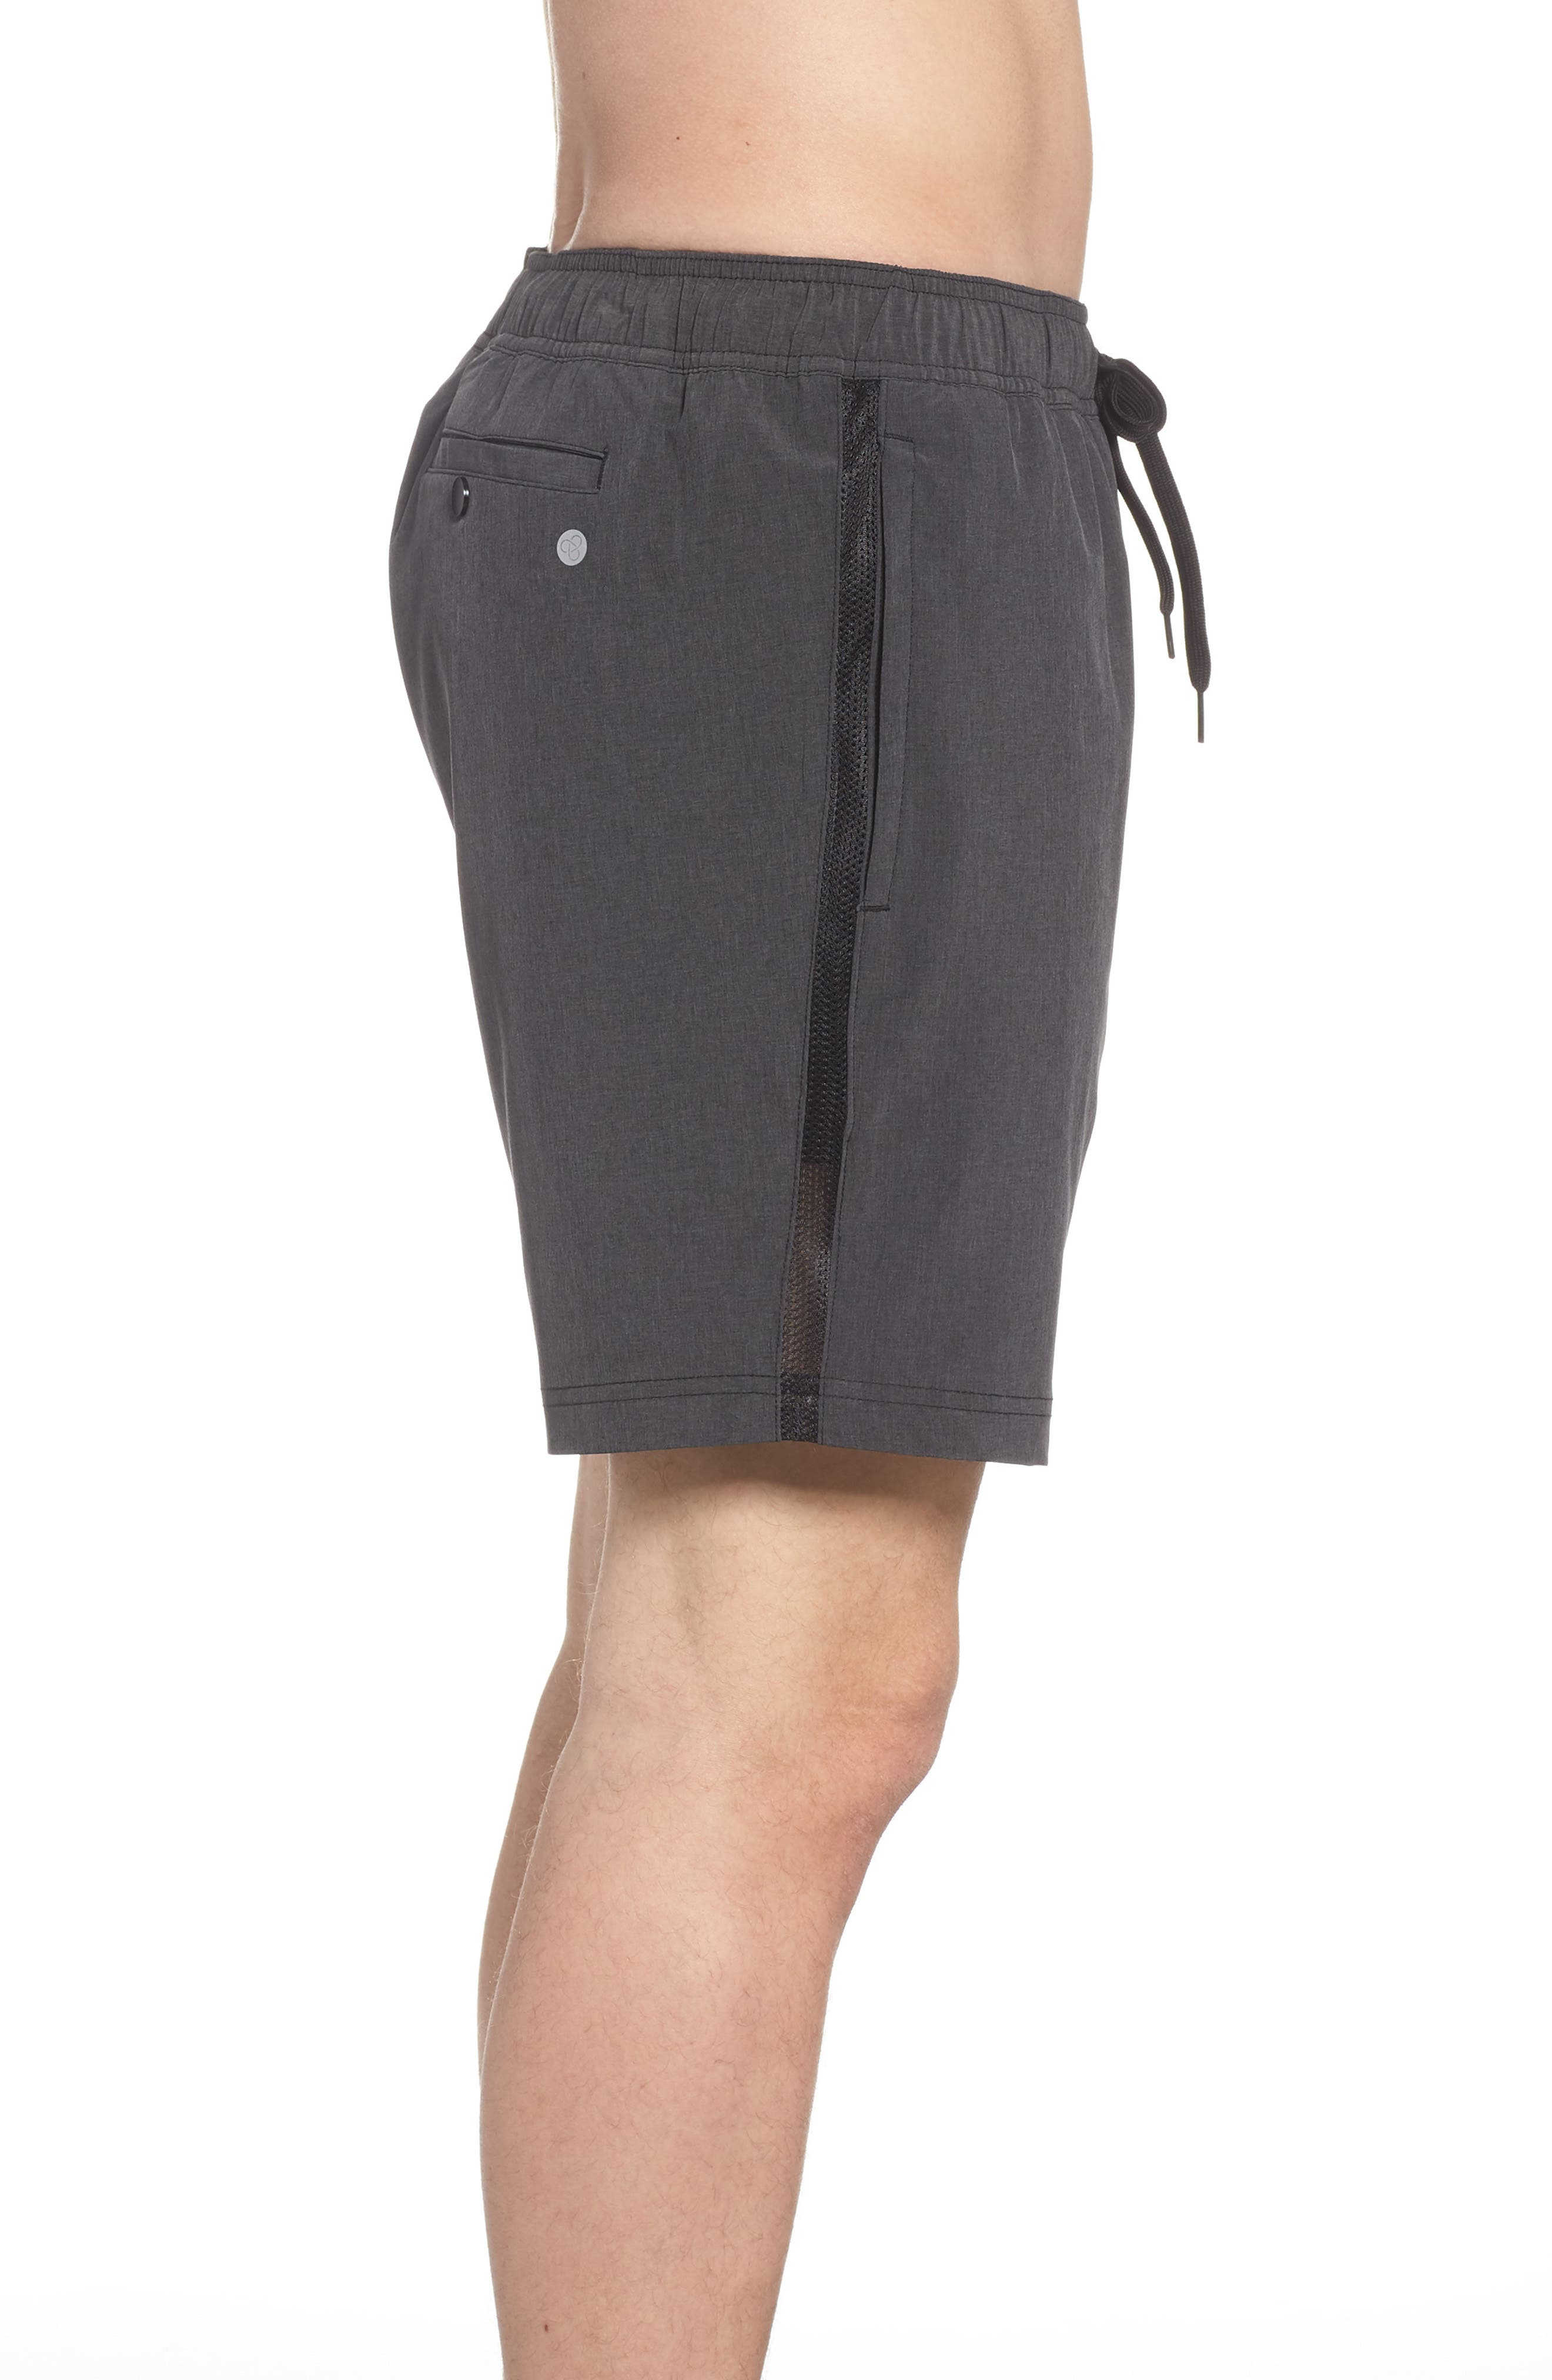 Stretch Swim Trunks,                             Alternate thumbnail 3, color,                             Black Oxide Heather